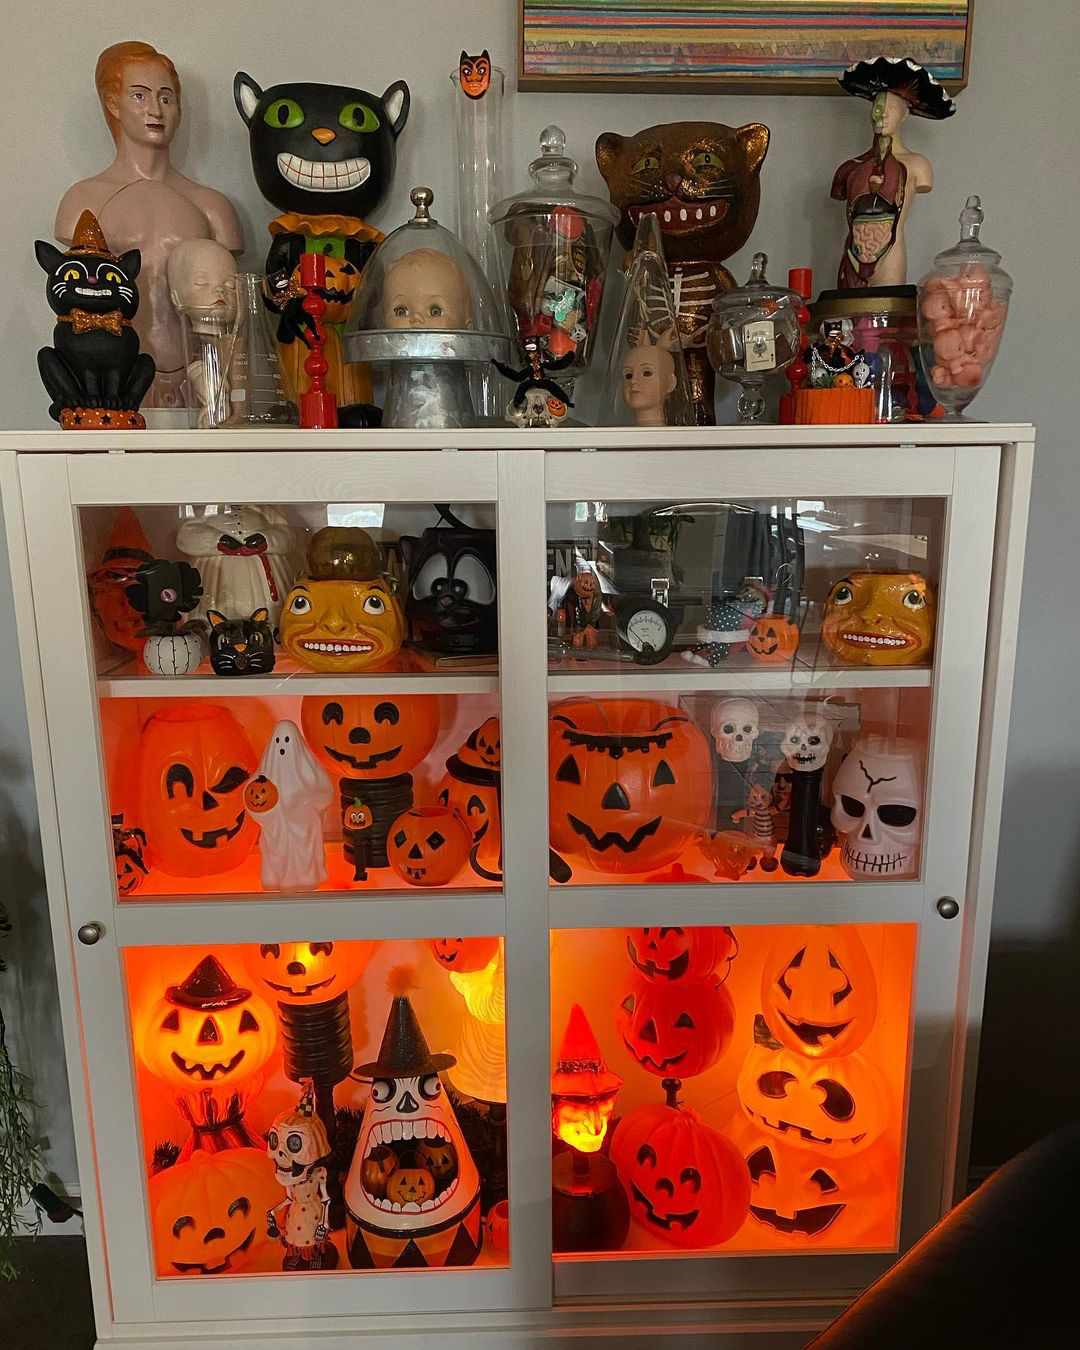 Cabinet display of pumpkins and more.